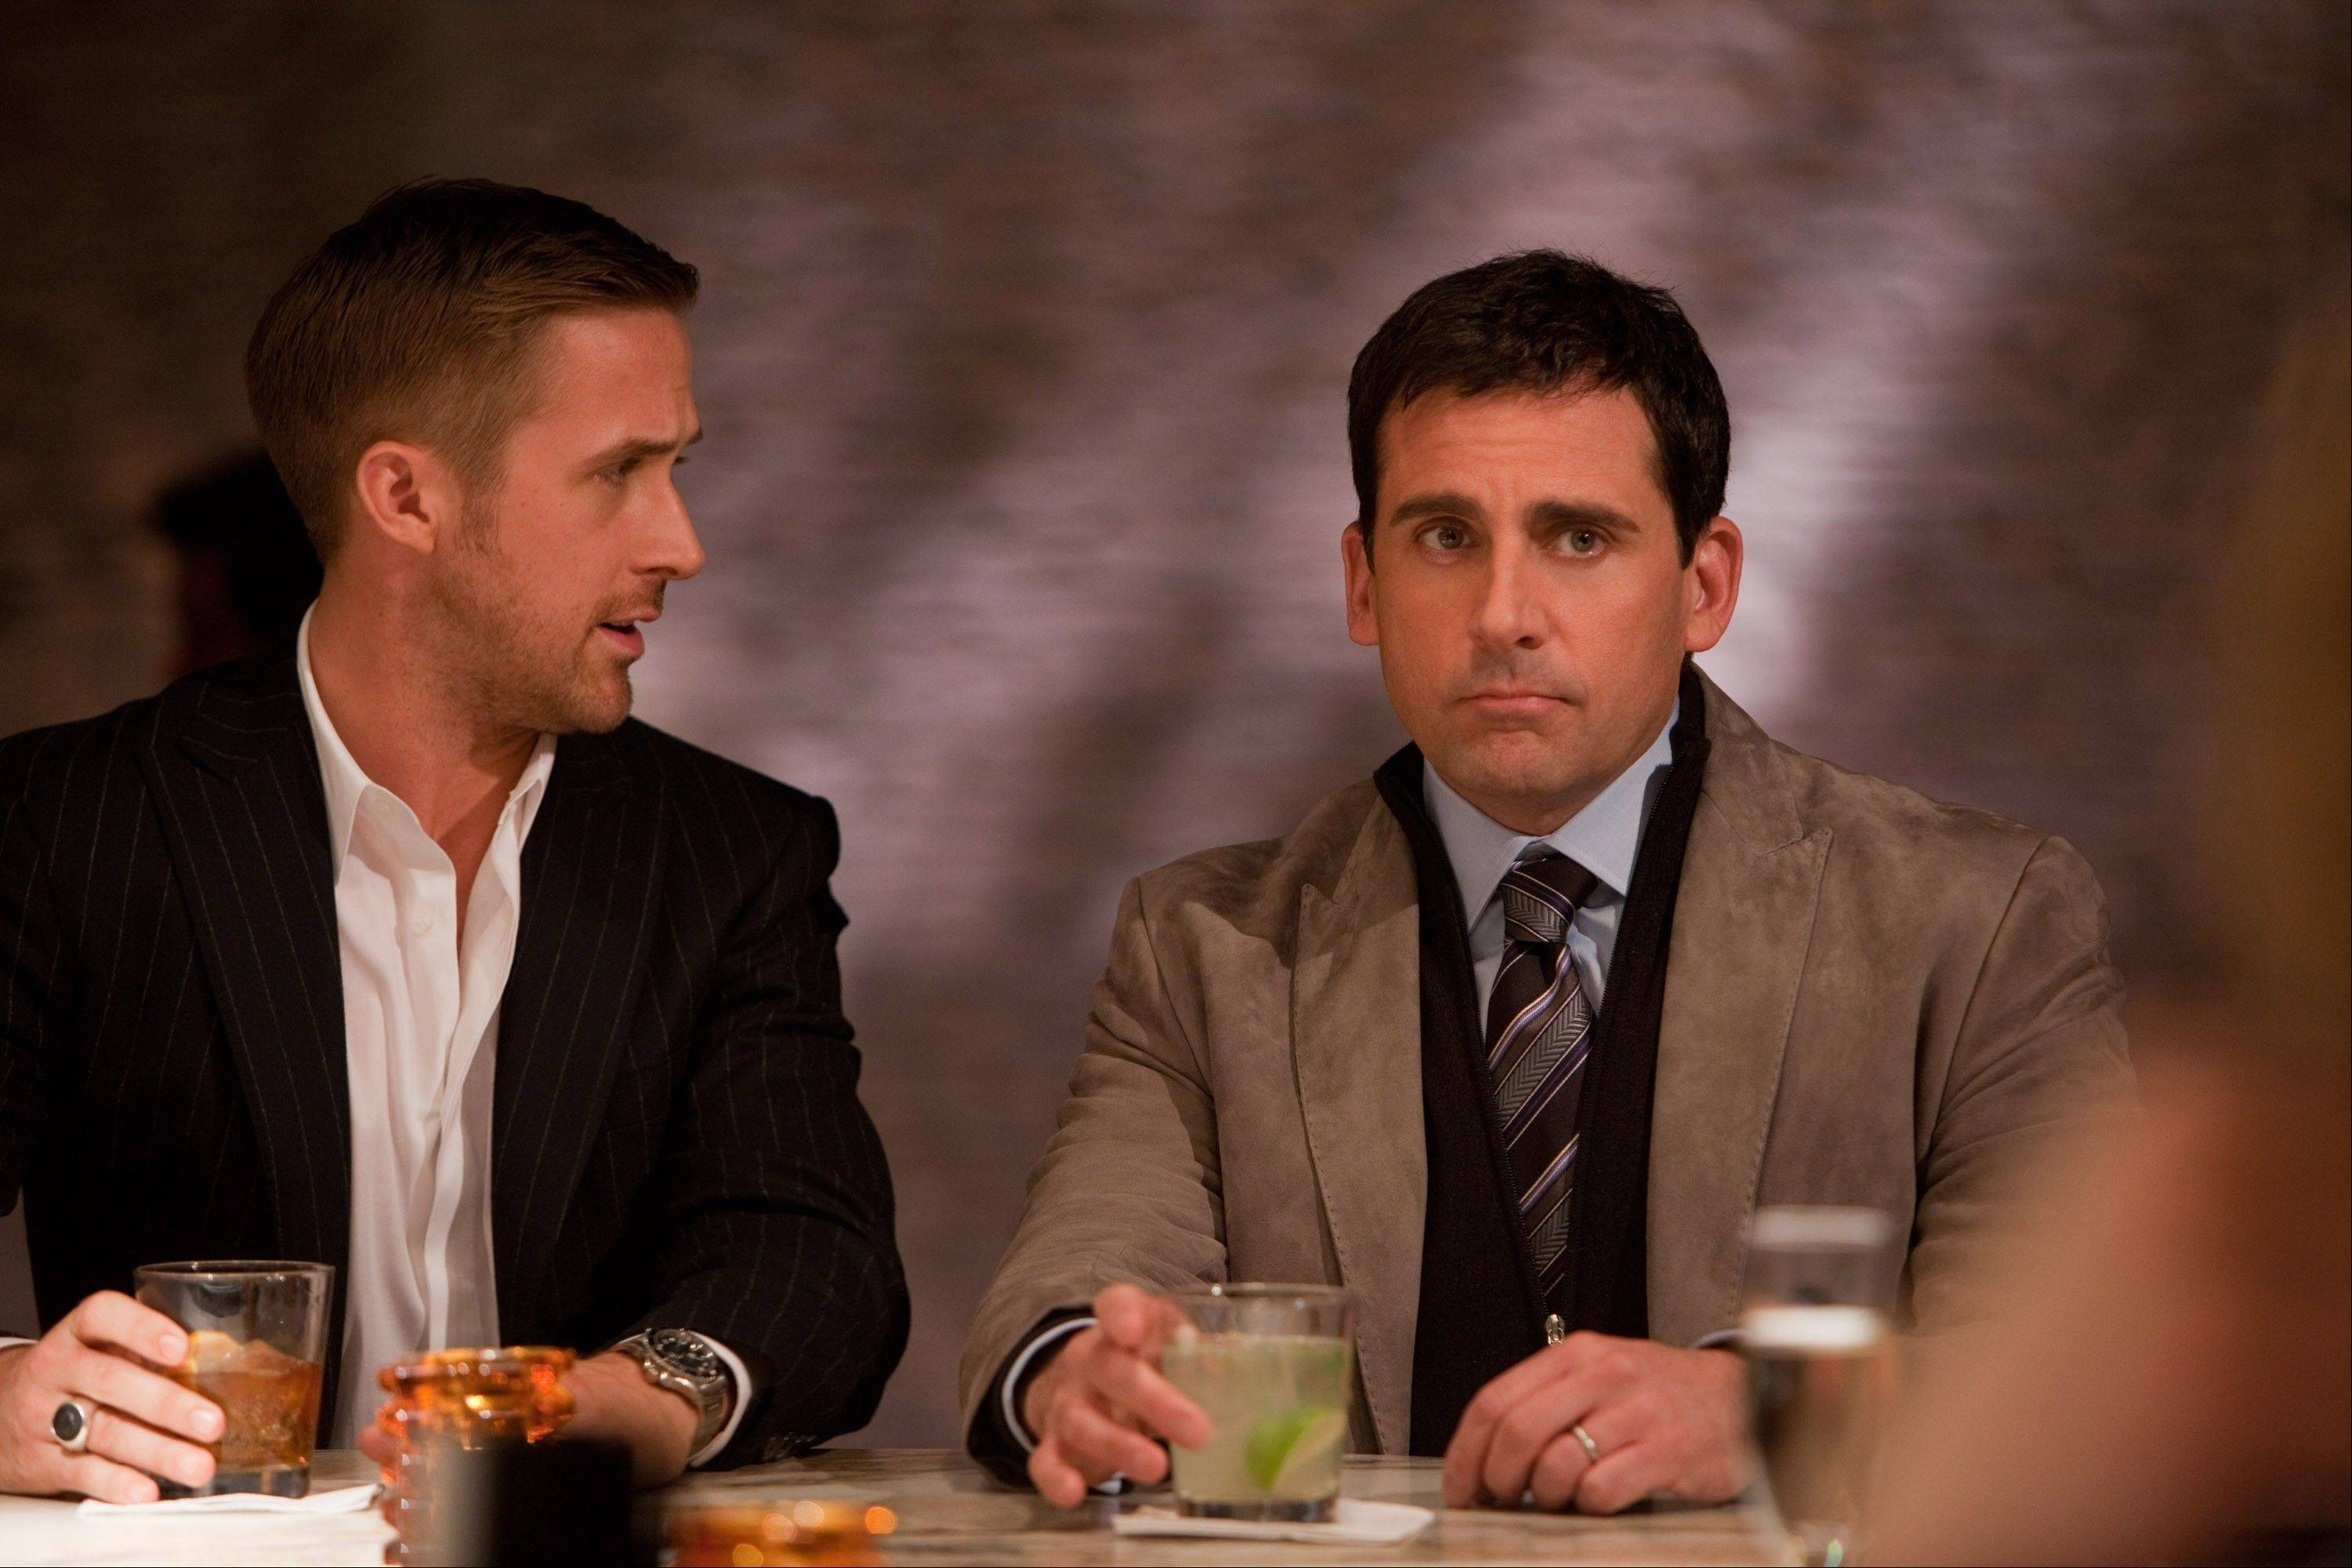 'Crazy, Stupid, Love.' a wise, funny rom-com